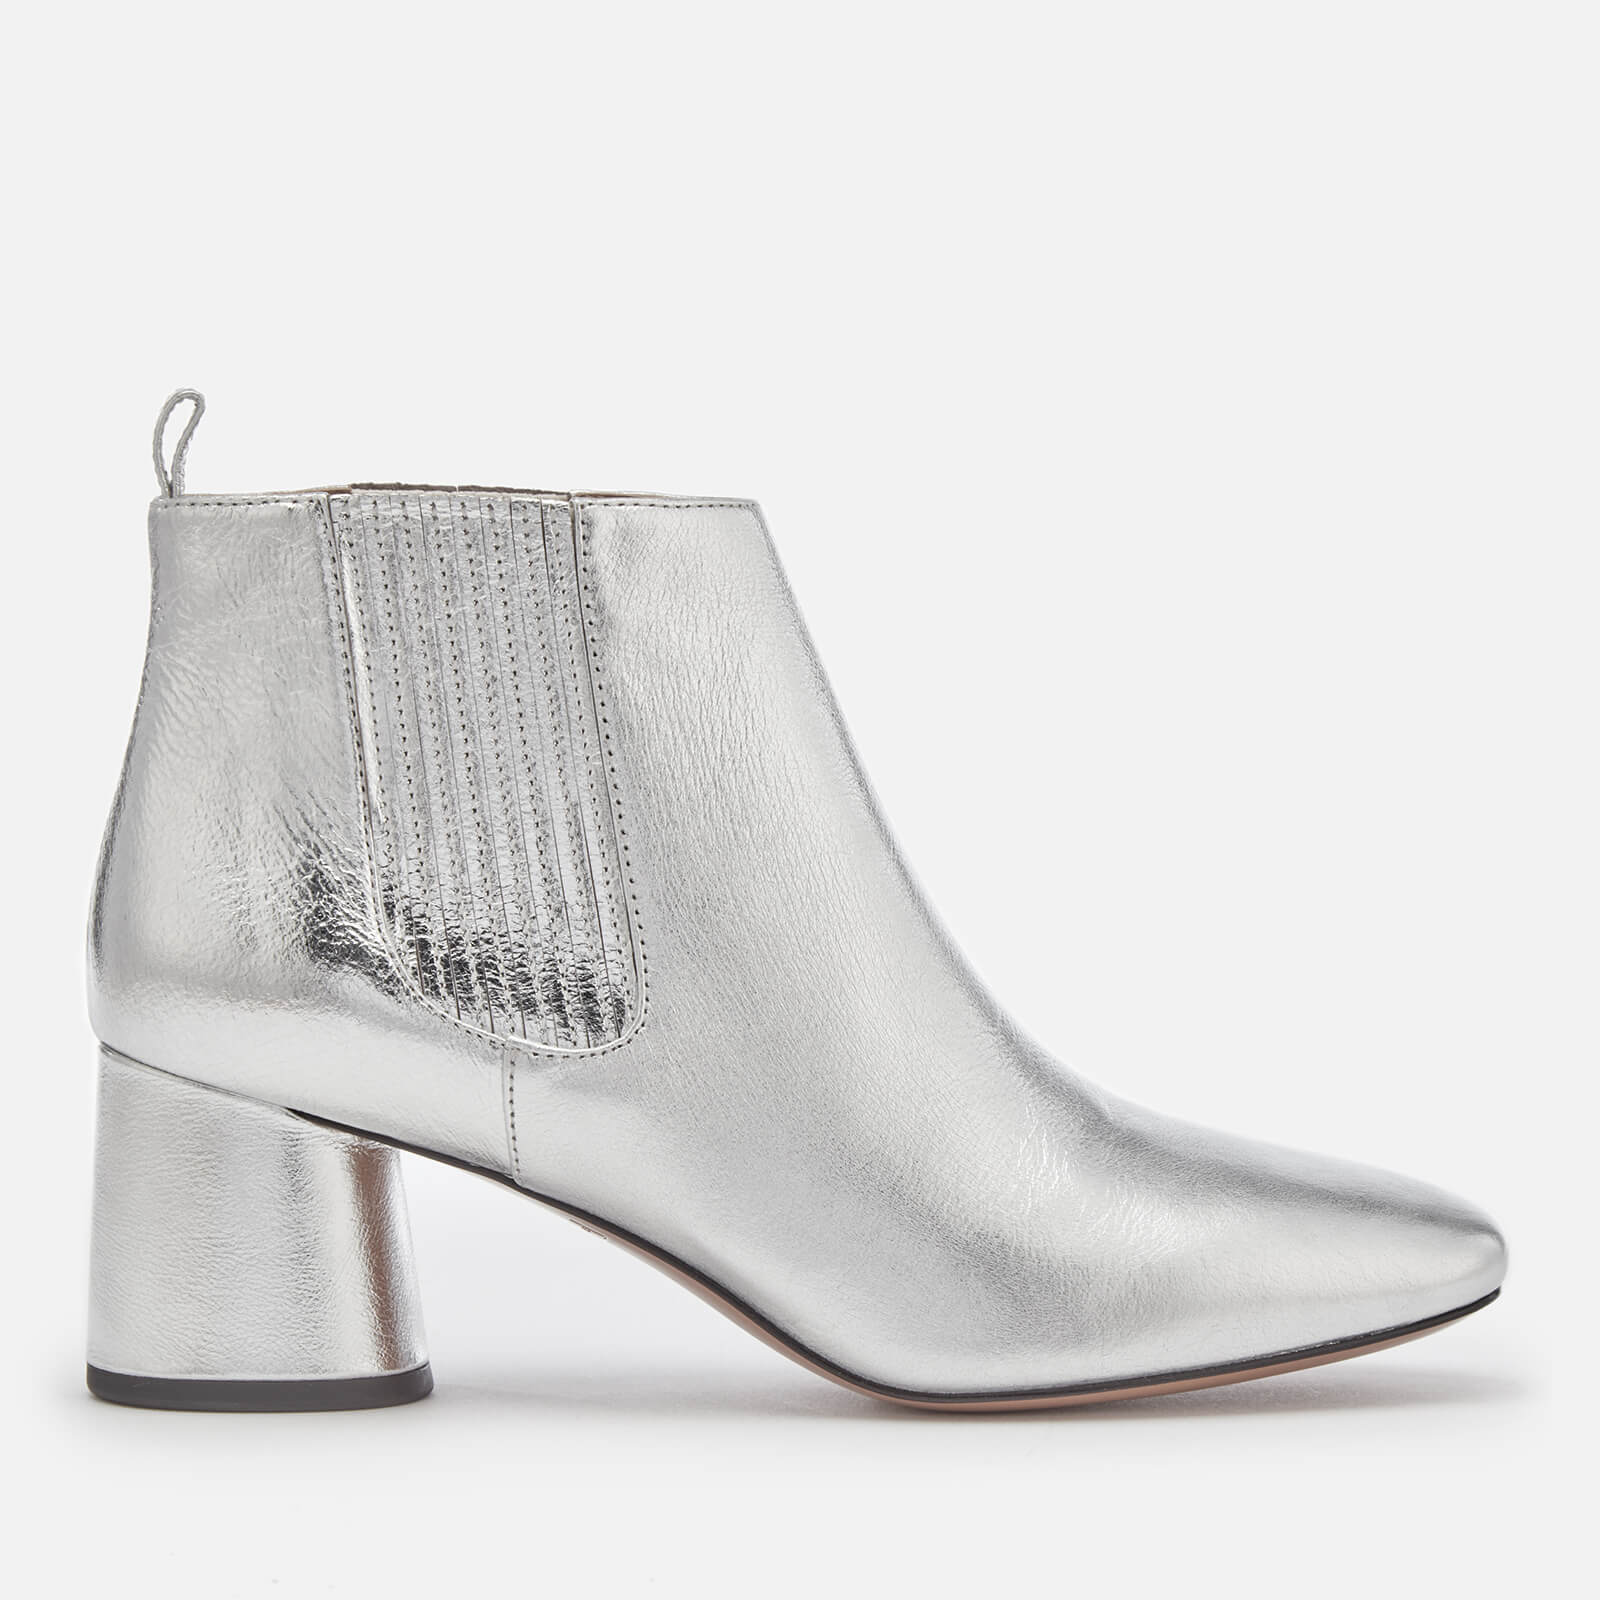 82d69872e7ae Marc Jacobs Women s Rocket Chelsea Boots - Silver - Free UK Delivery over  £50